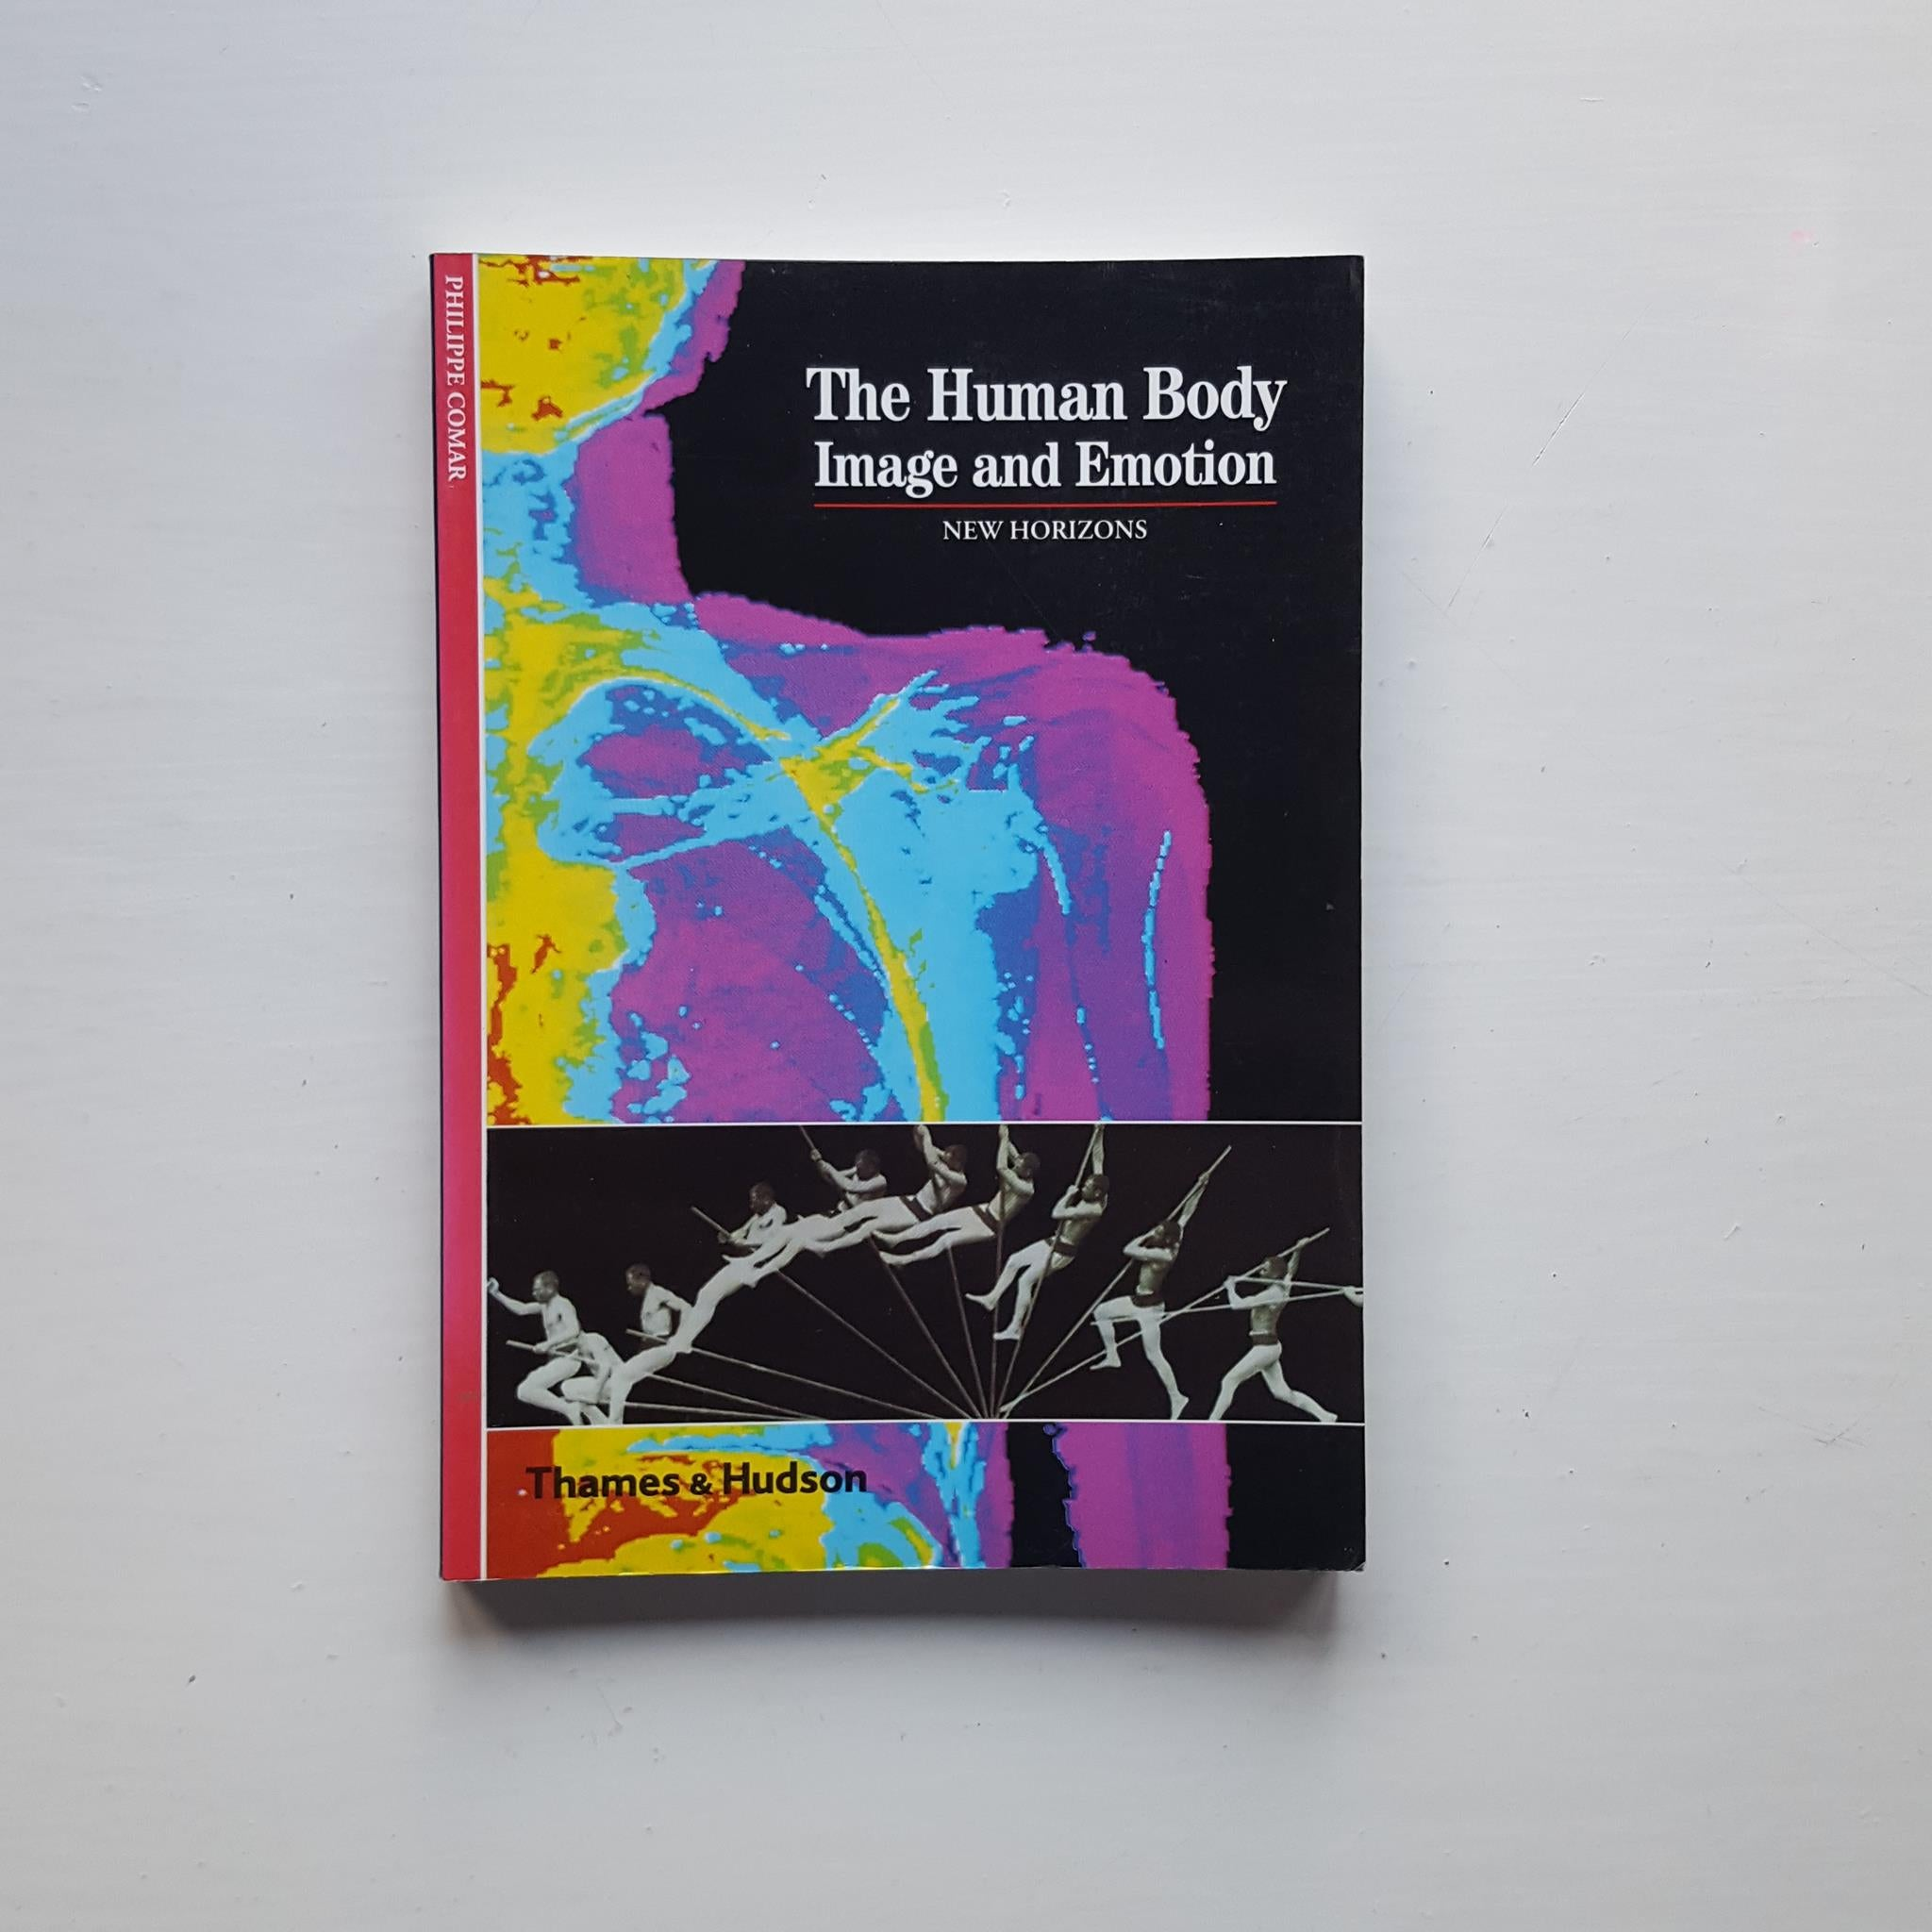 The Human Body: Image and Emotion by Philippe Comar